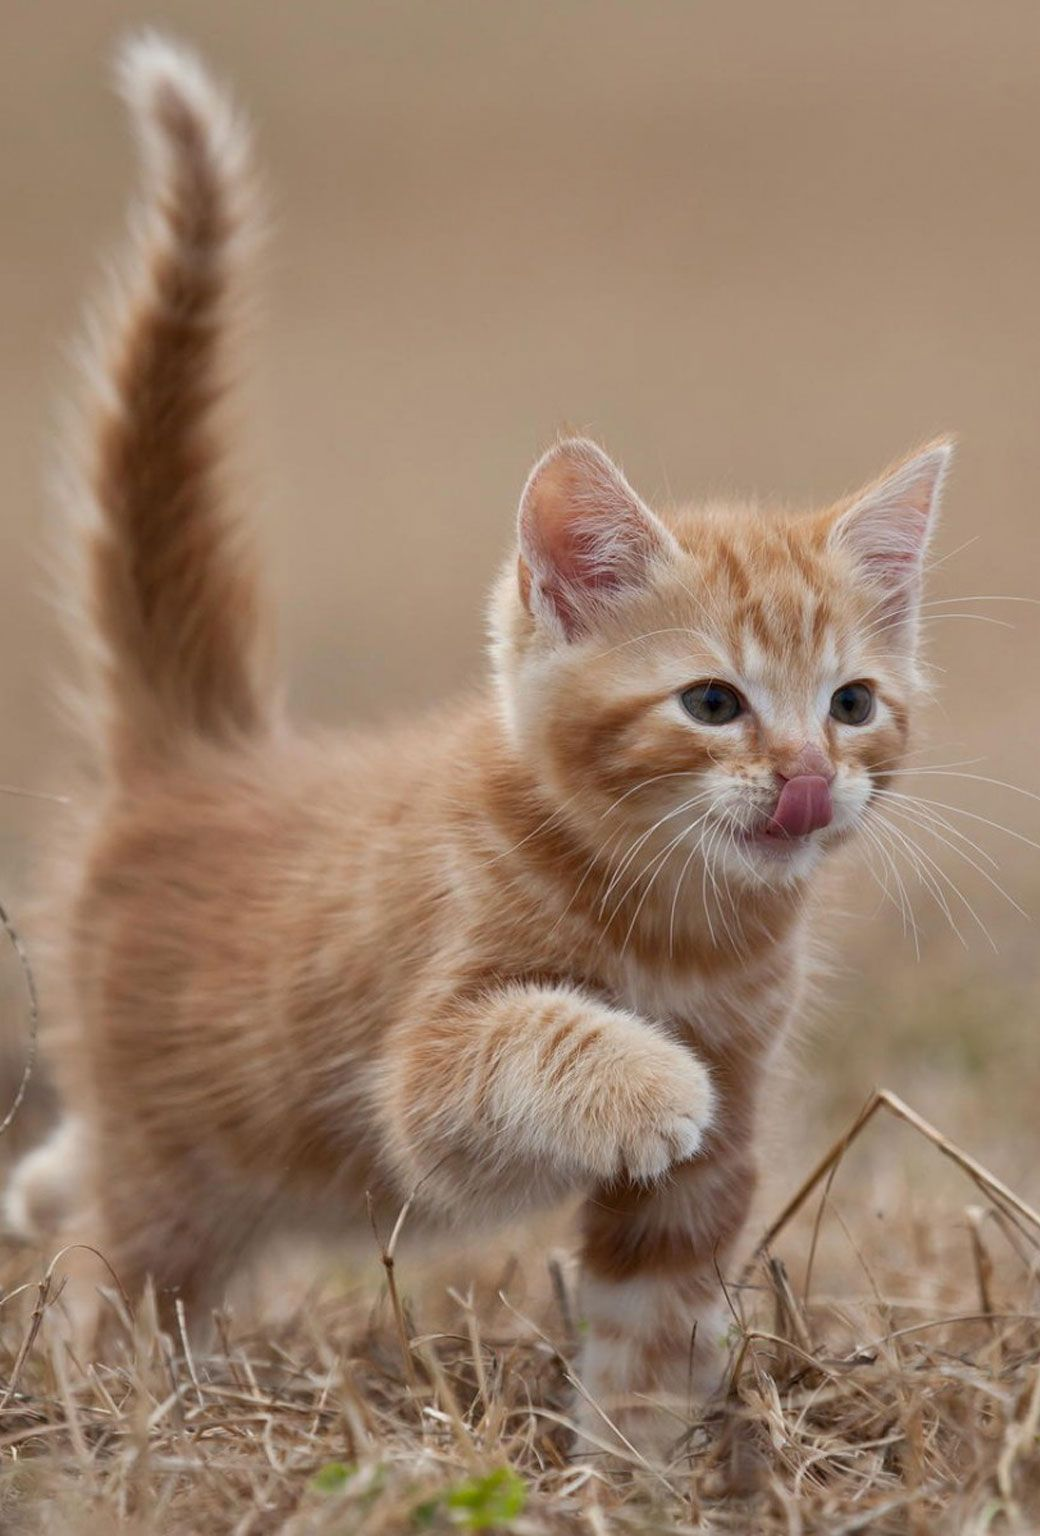 Parallaxwallpapers Baby Cats Kittens Cutest Cats